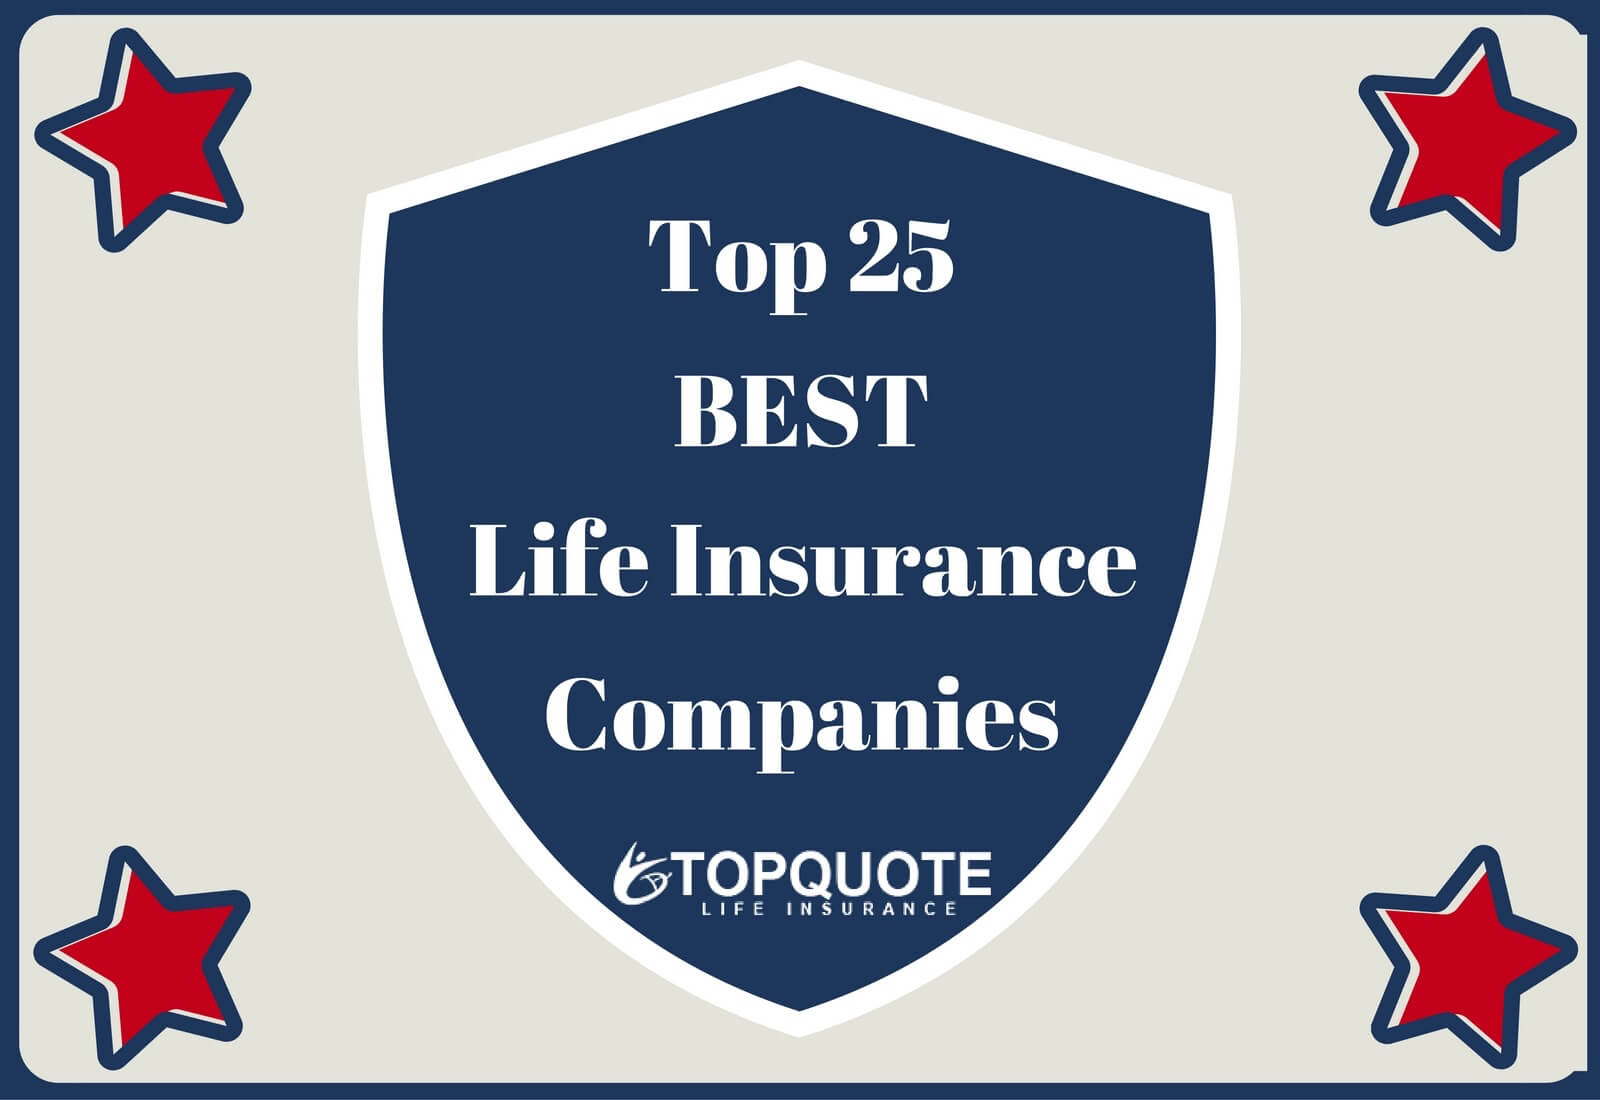 Permanent Life Insurance Quotes Online Top 25 Best Life Insurance Companies Choosing The Perfect Coverage